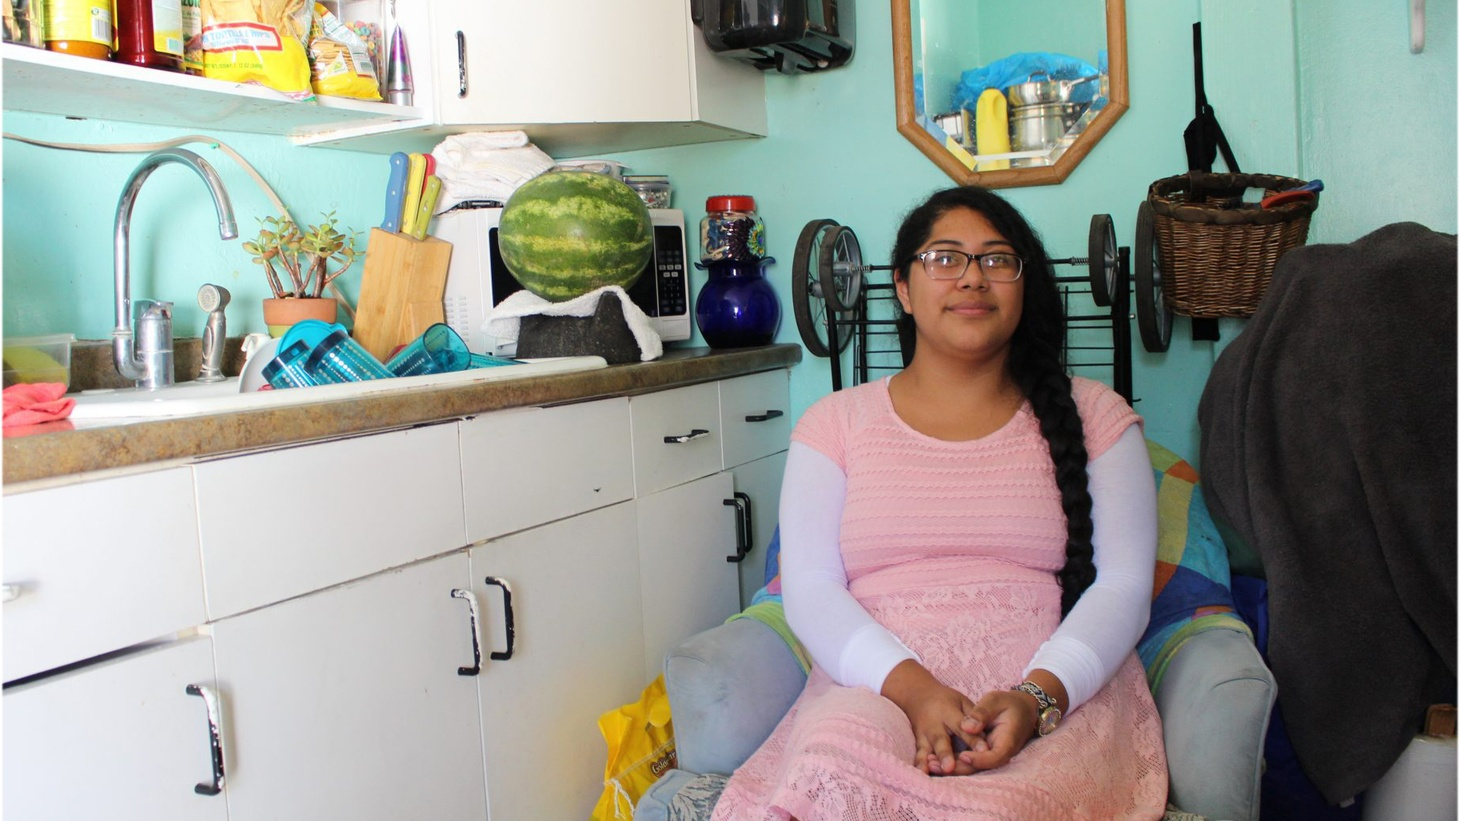 With vacancy rates low and rent prices high in Santa Barbara, low income families are getting pushed out on the streets or into substandard housing. That affects kids, too. According to state data, one in eight Santa Barbara County public school students are homeless. Meet one of them.